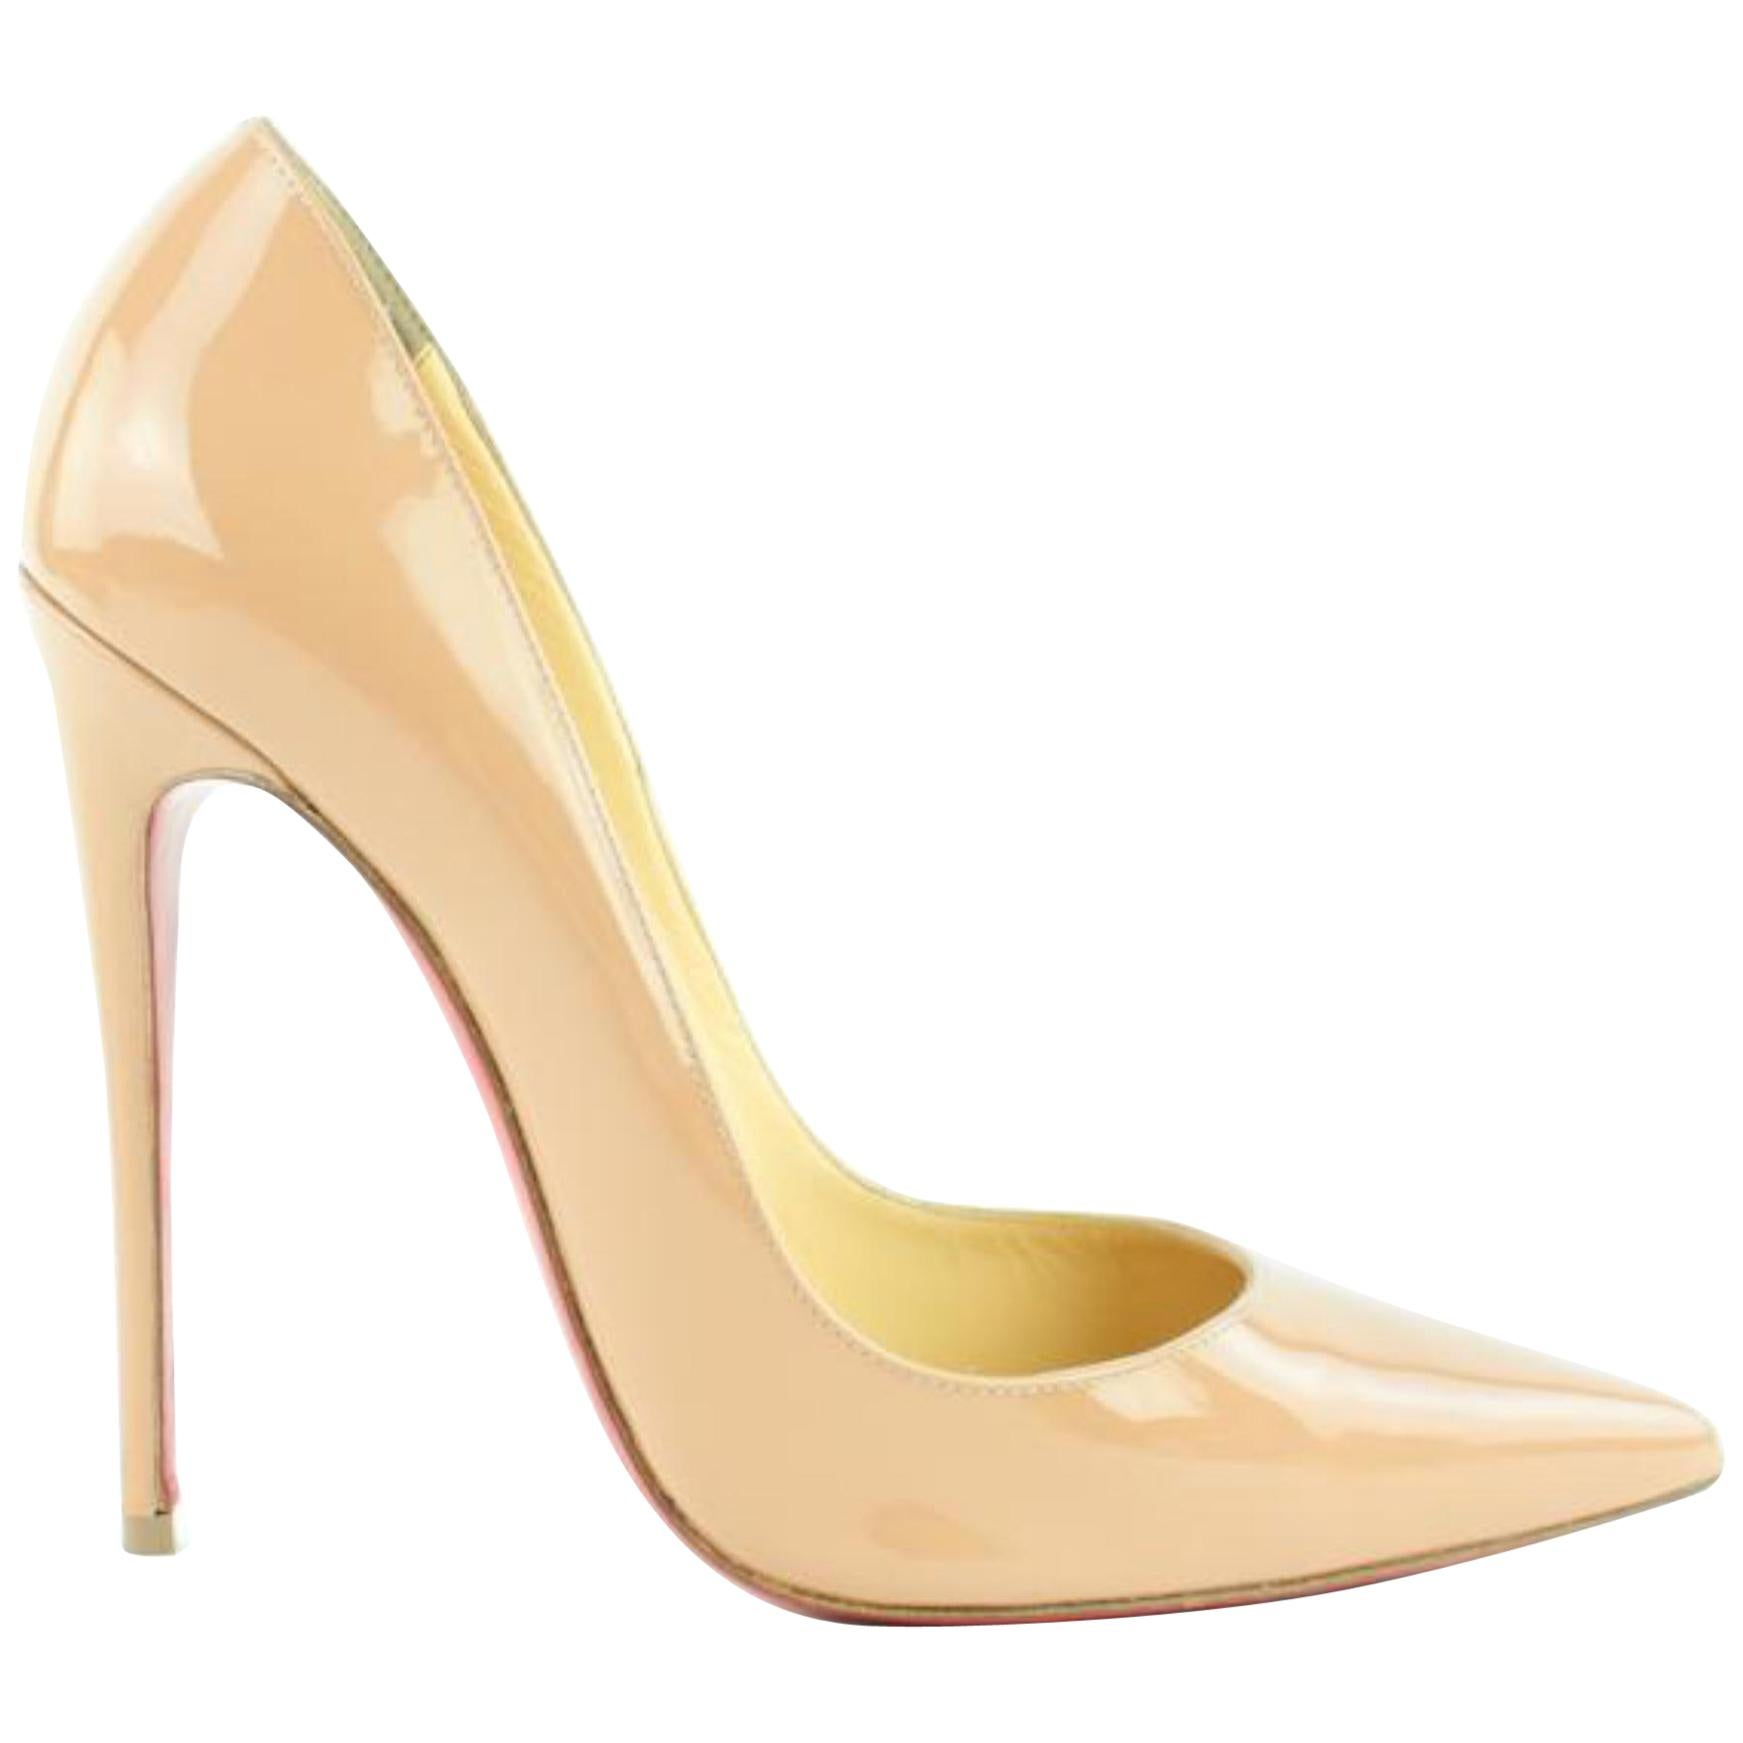 a46763ba6db Vintage Charlotte Olympia Shoes - 9 For Sale at 1stdibs